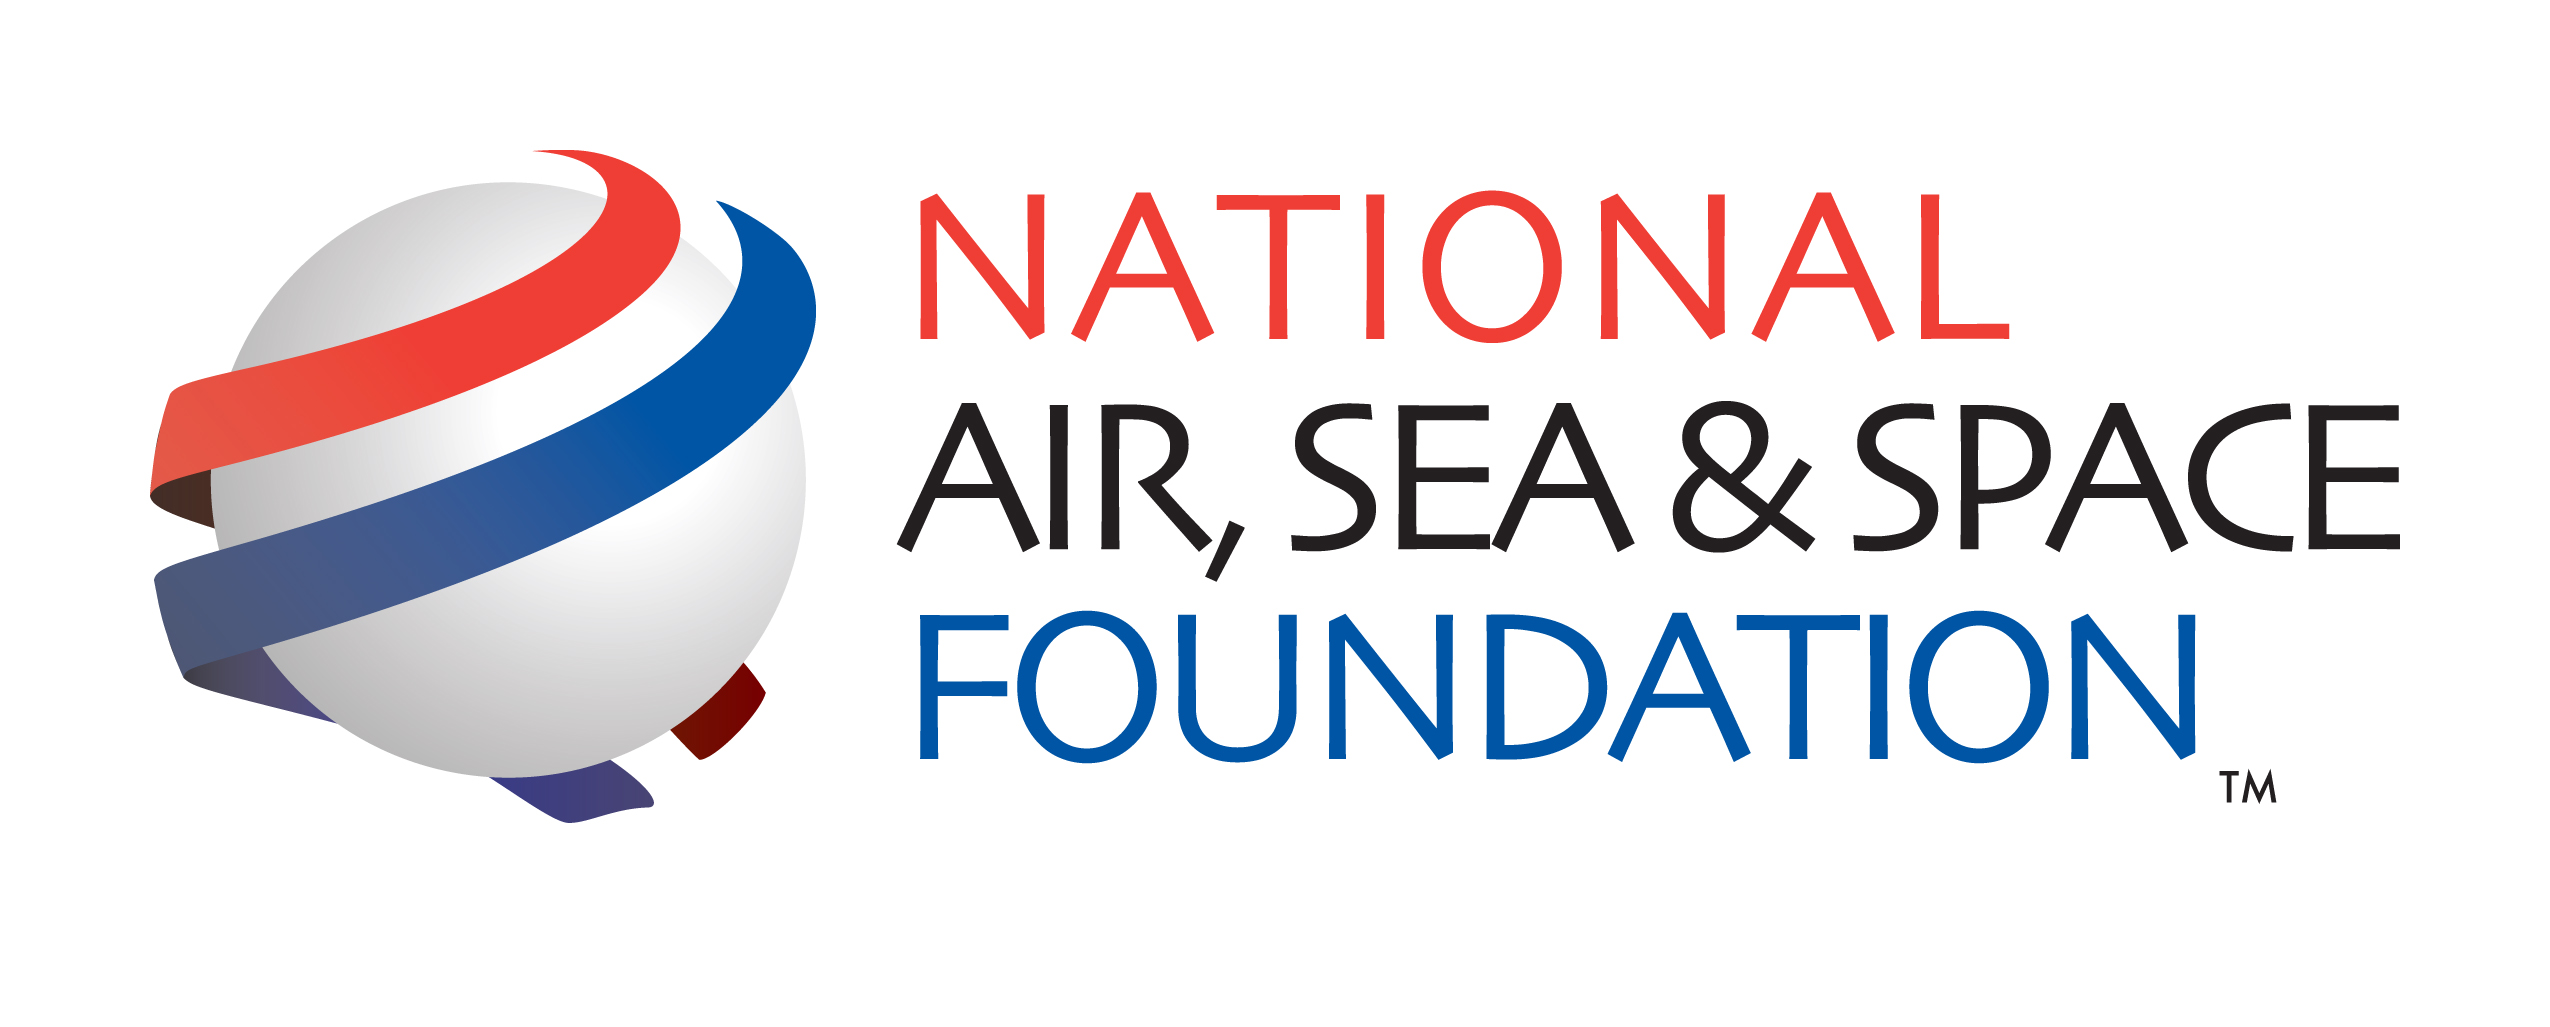 National Air, Sea and Space Foundation (logo); Cape Canaveral